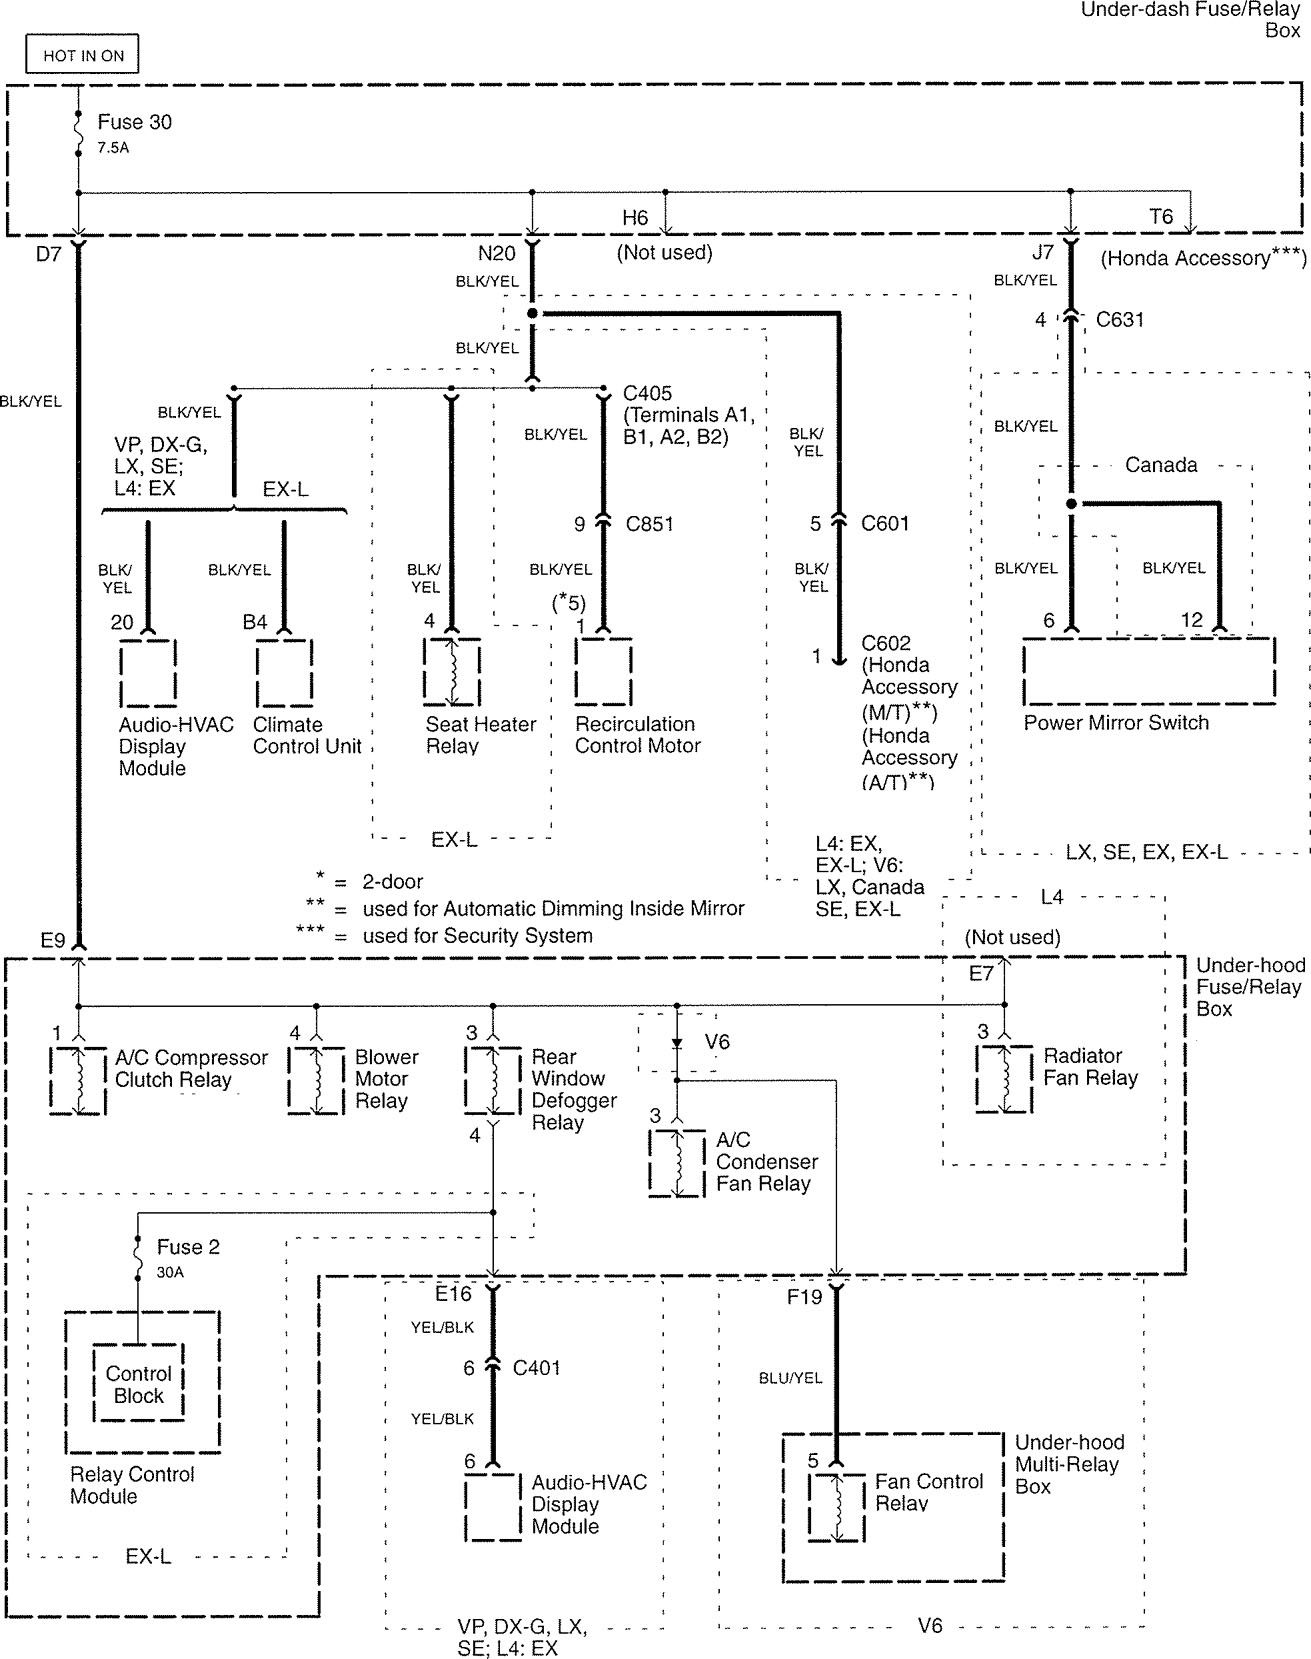 Honda Accord (2006) - wiring diagrams - power distribution ... on